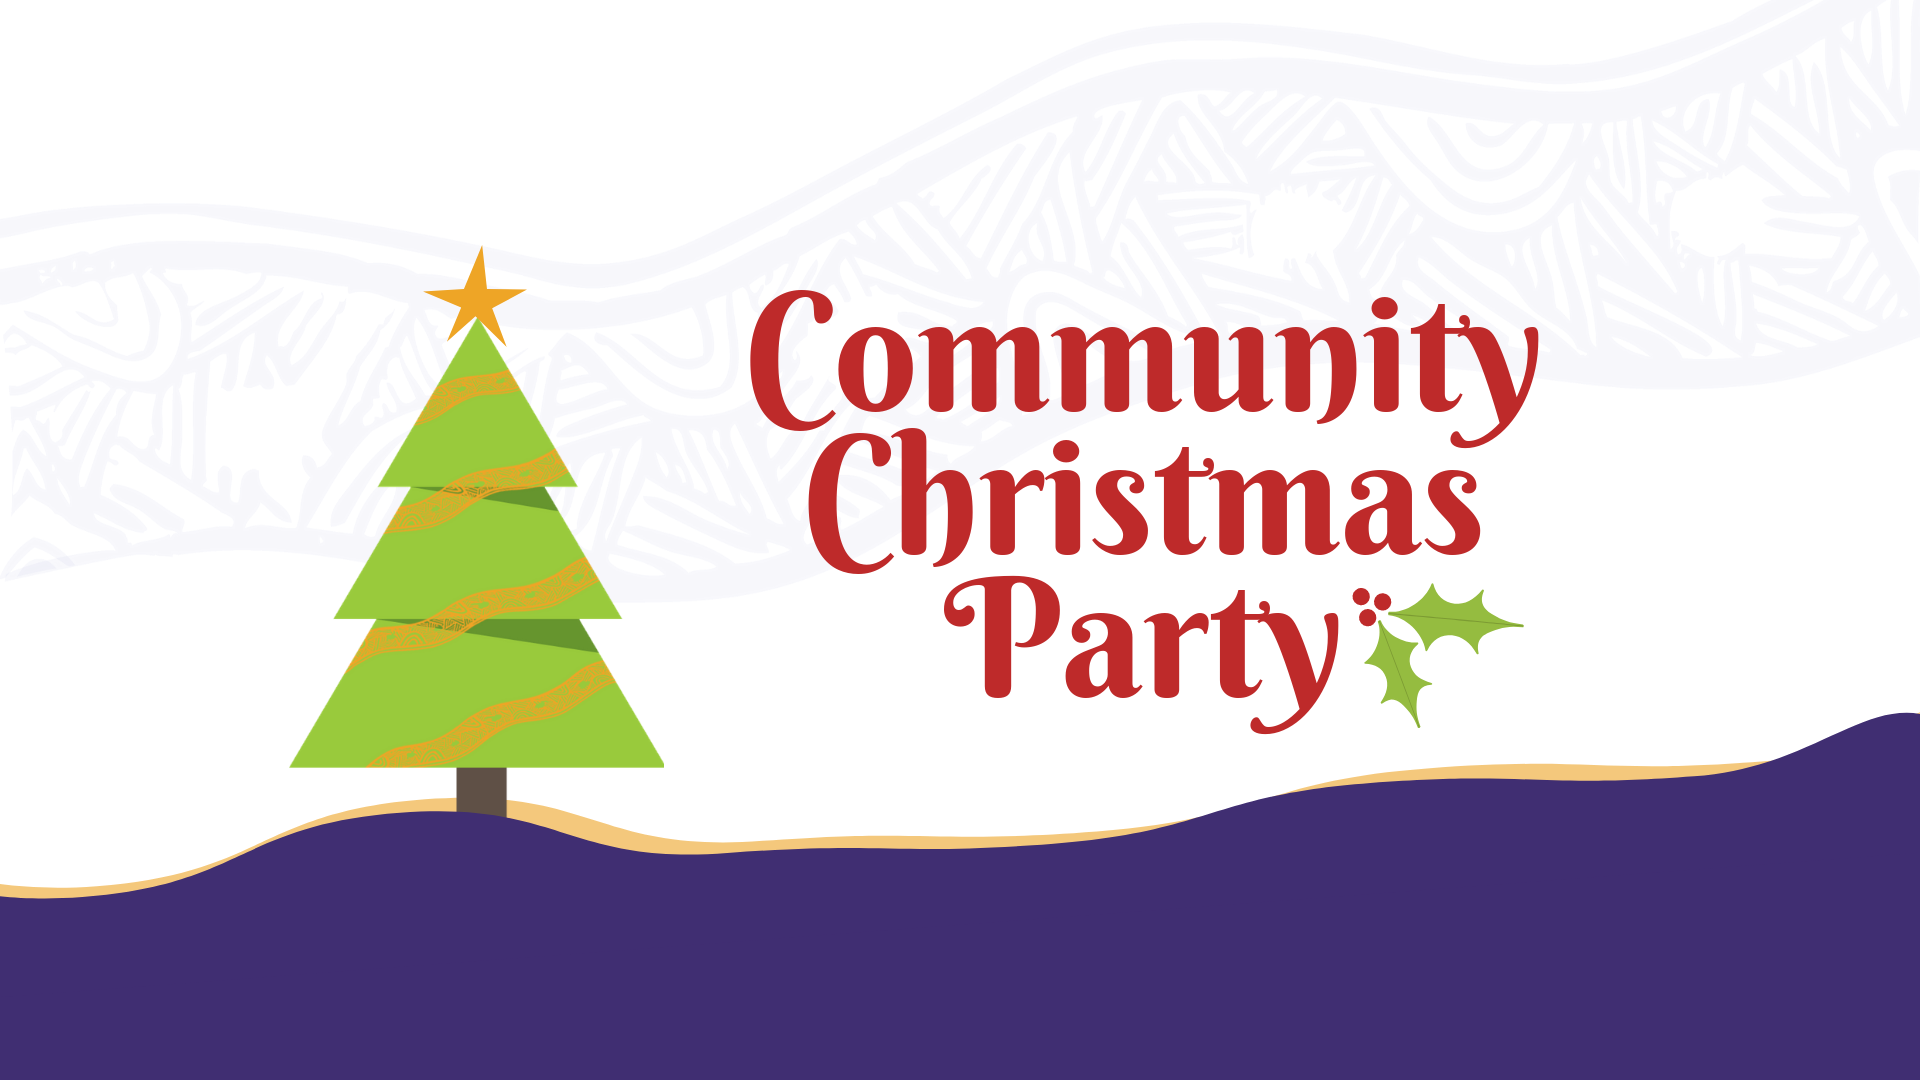 Christmas party bus clipart banner stock Community Christmas Party - Yerin banner stock